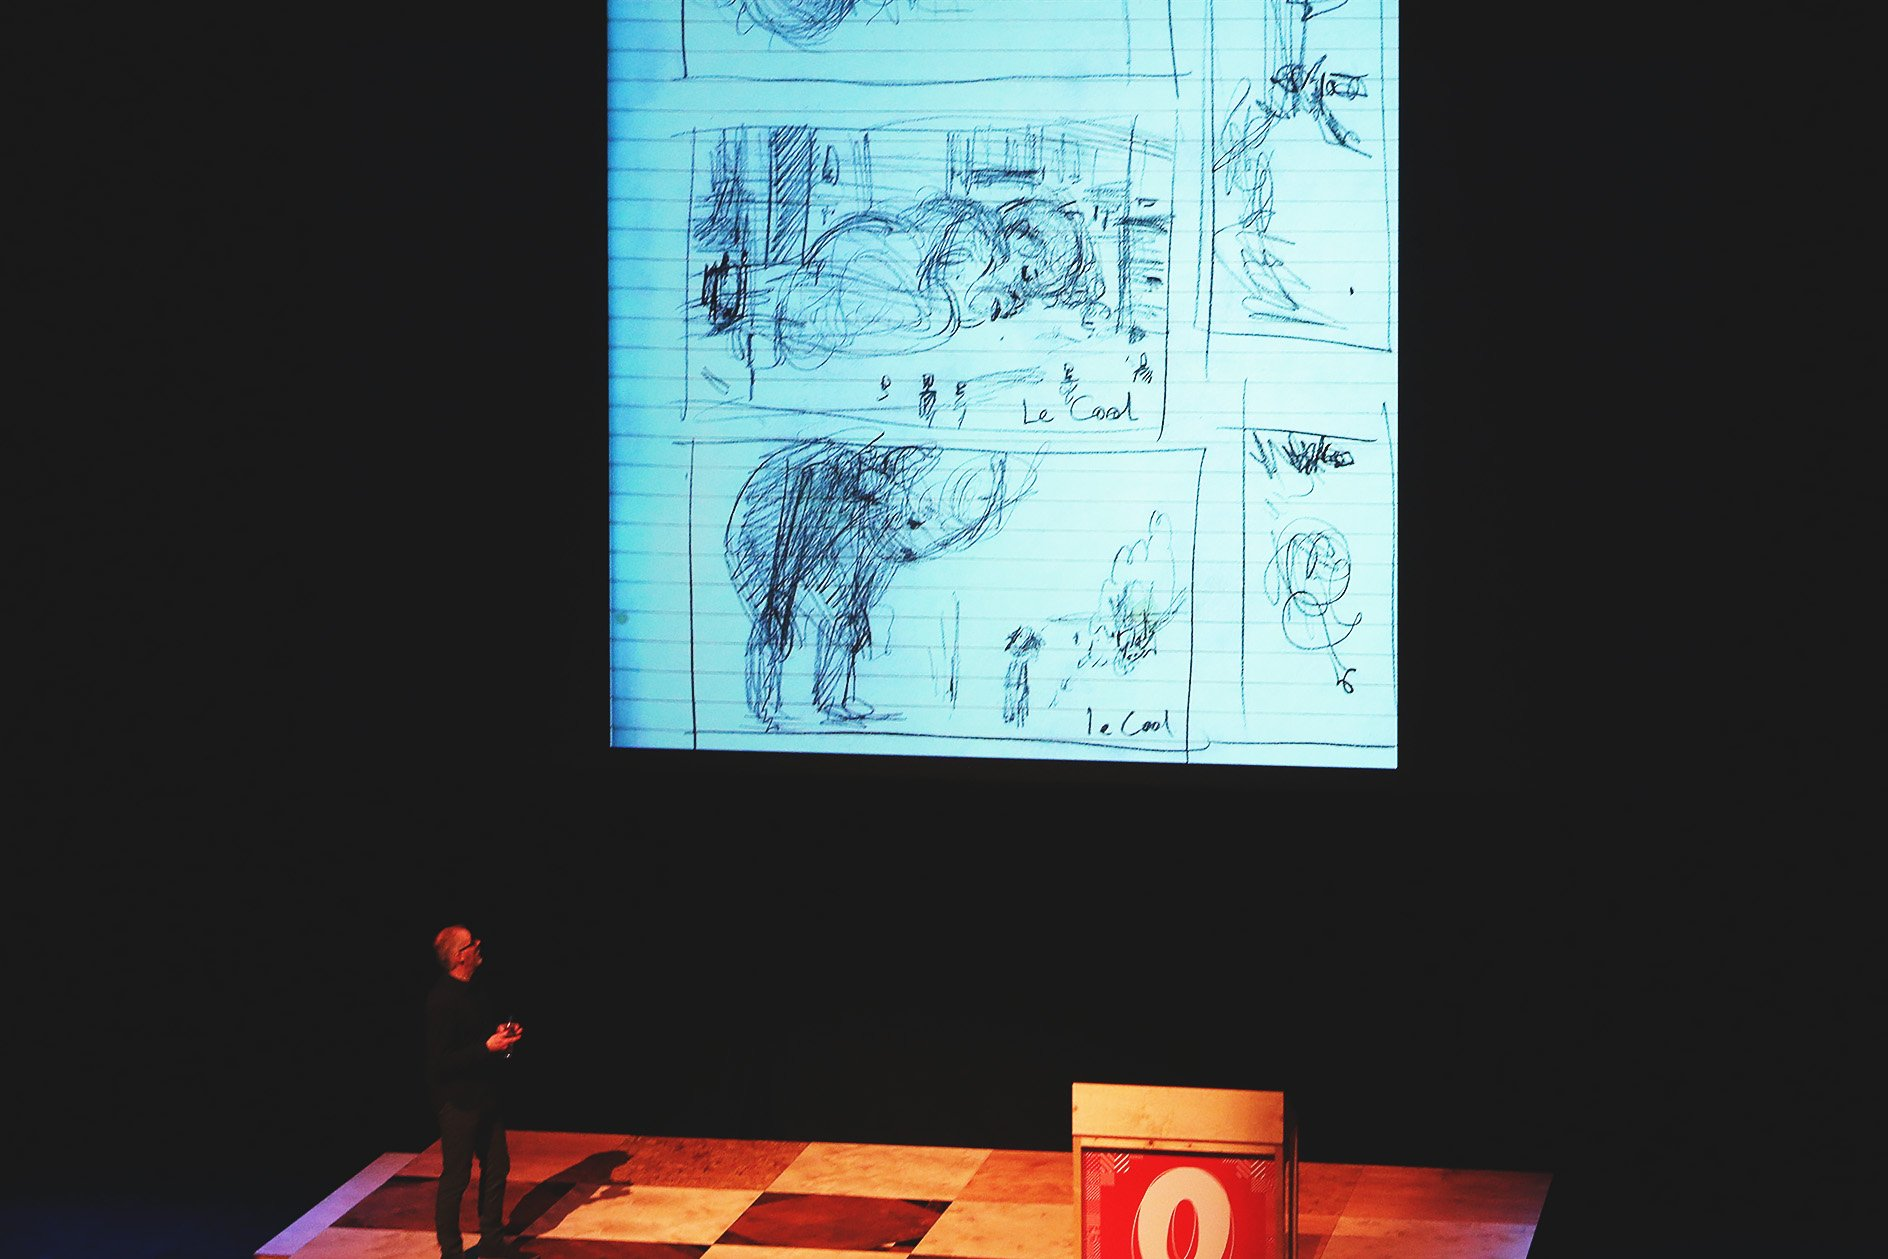 Steve Doogan at OFFSET 2015 – Initial sketches